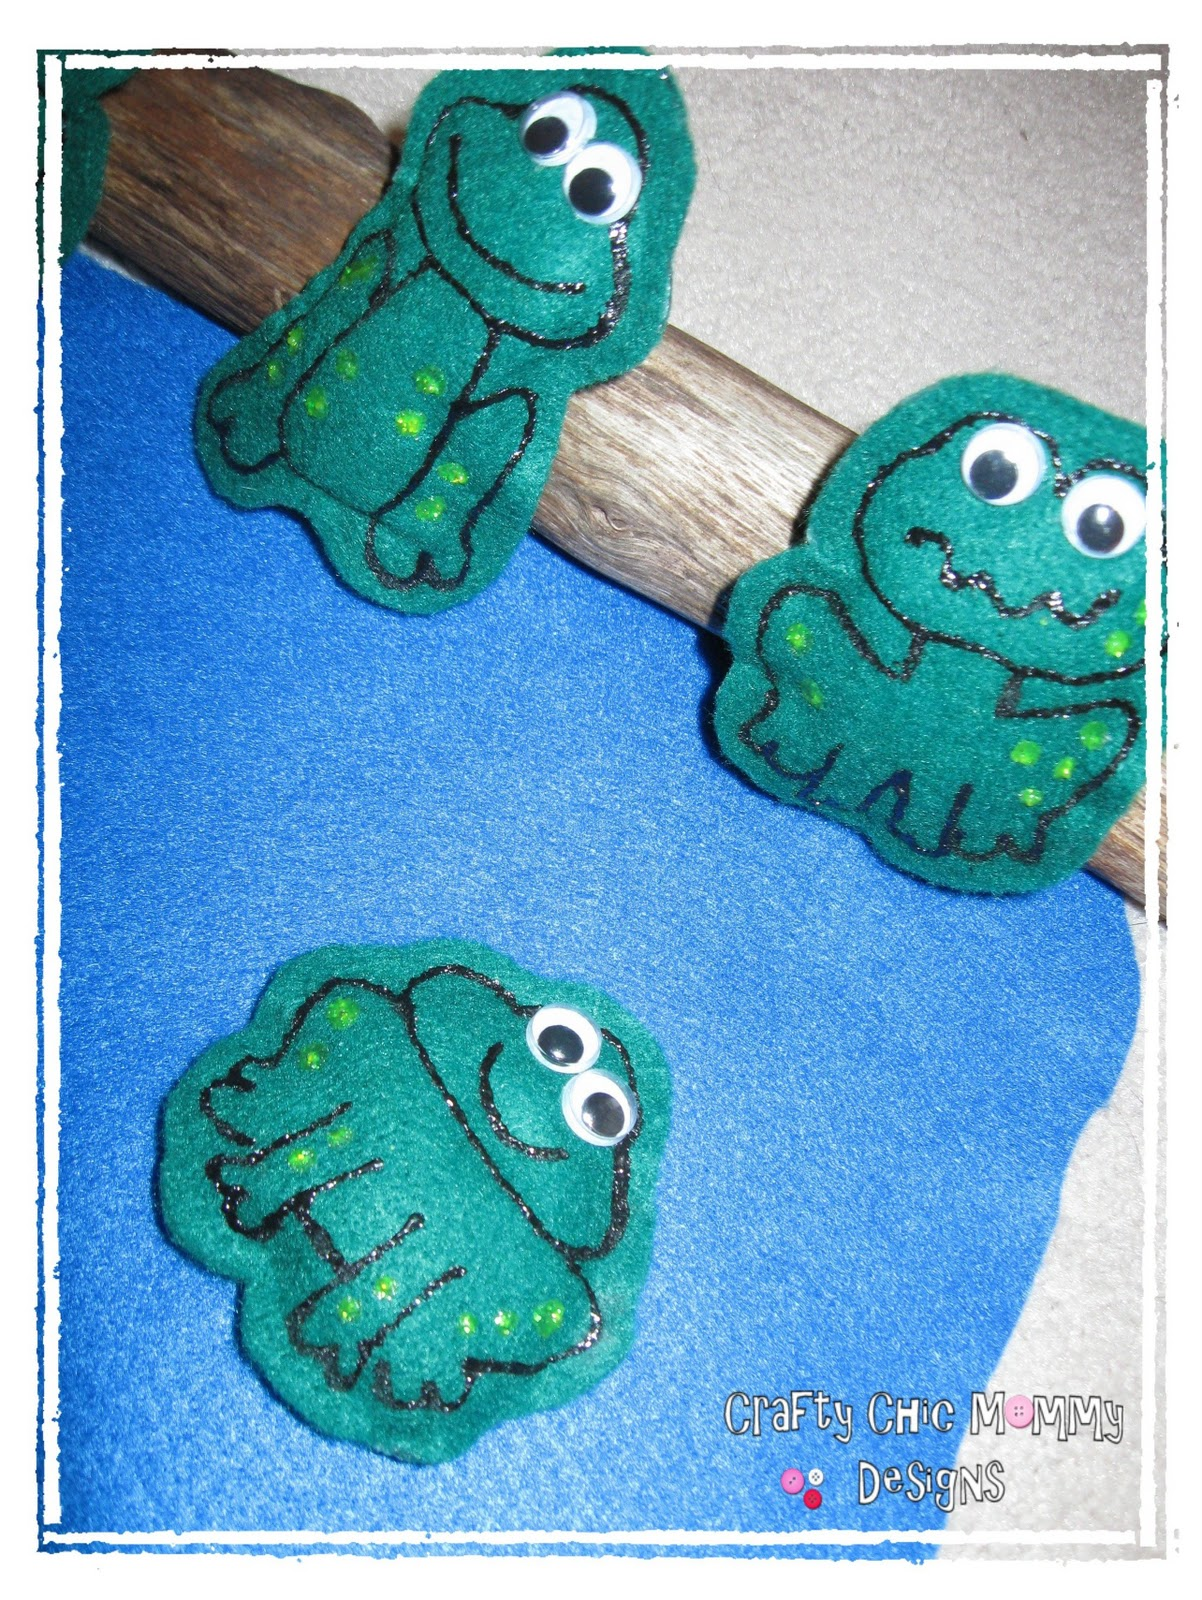 Crafty Chic Mommy Five Green And Speckled Frogs